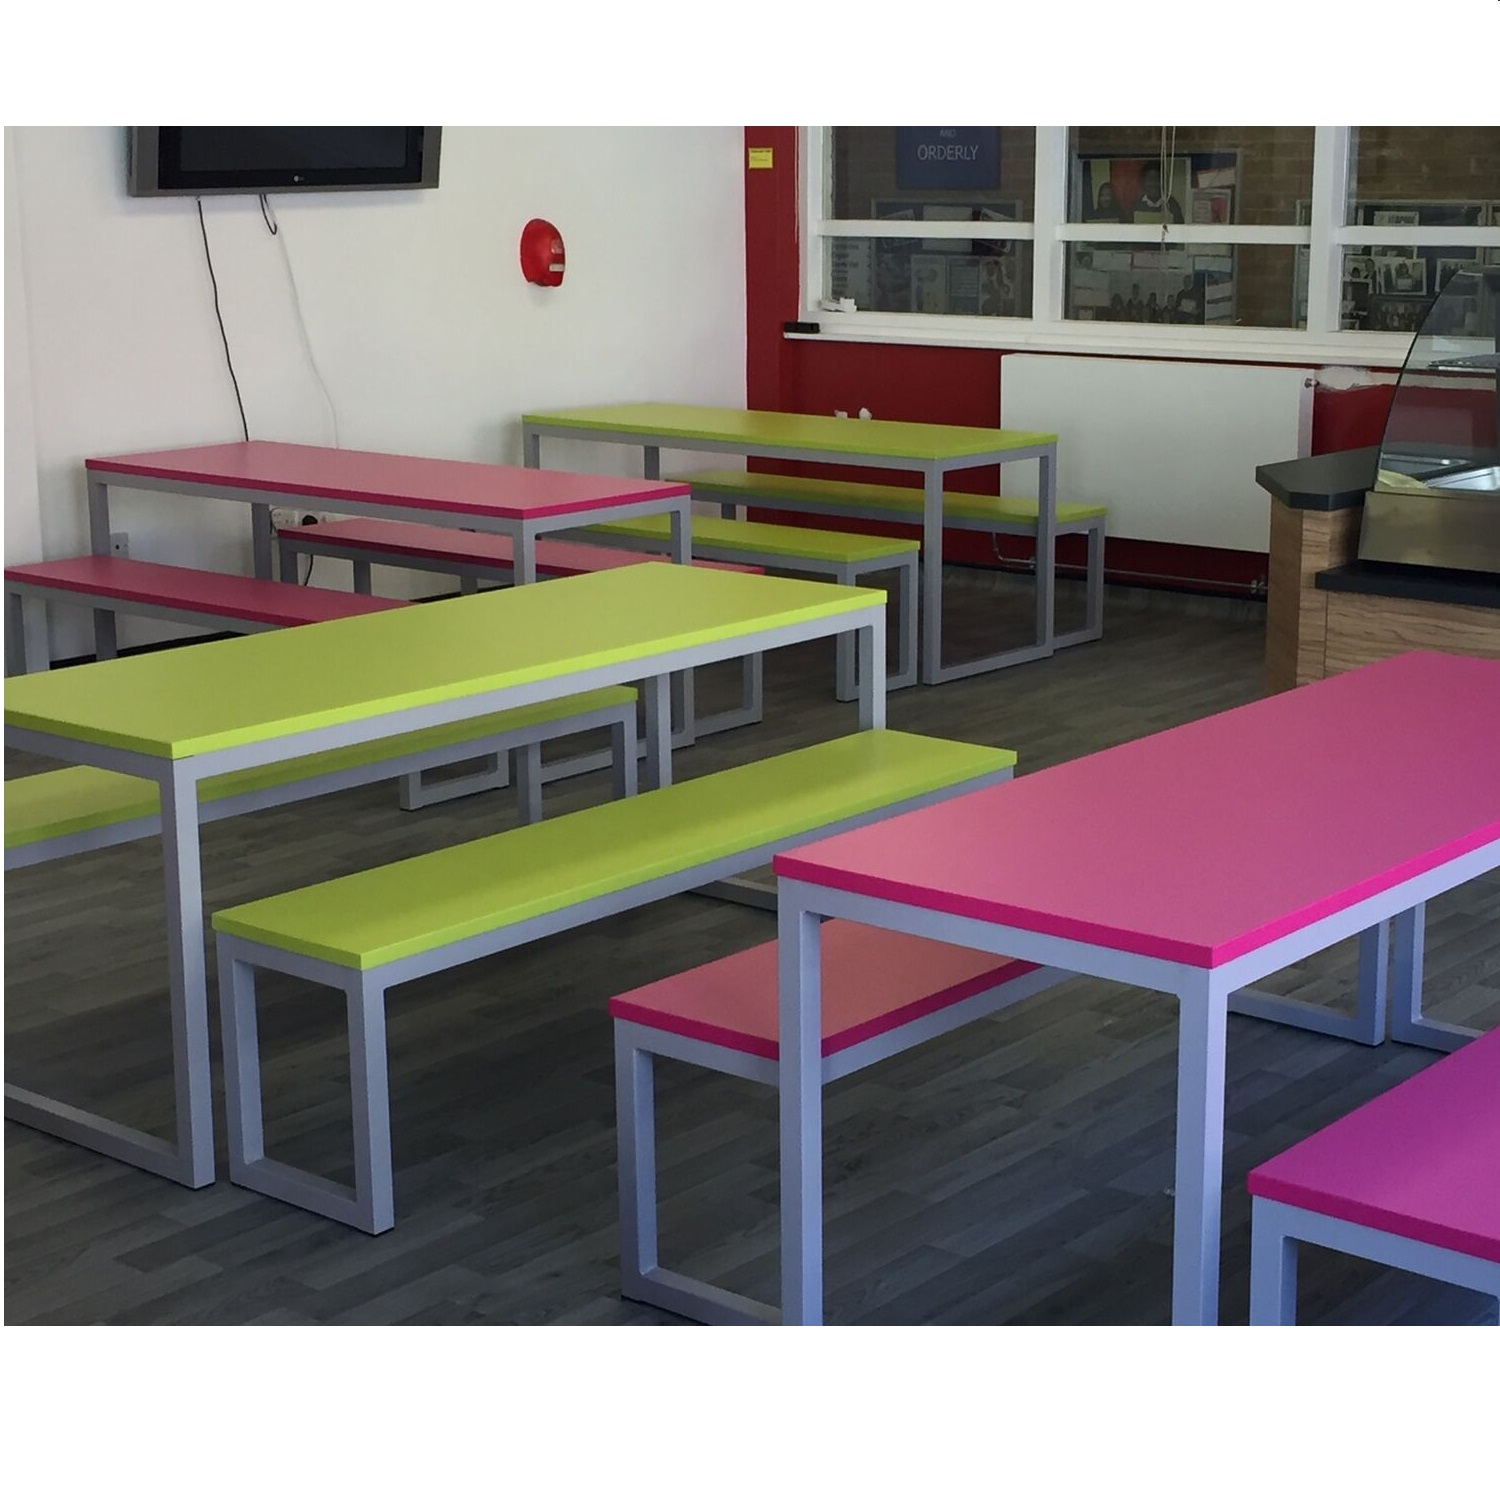 Urban Dinning Bench Sets Canteen Cafe Tables Allard Office